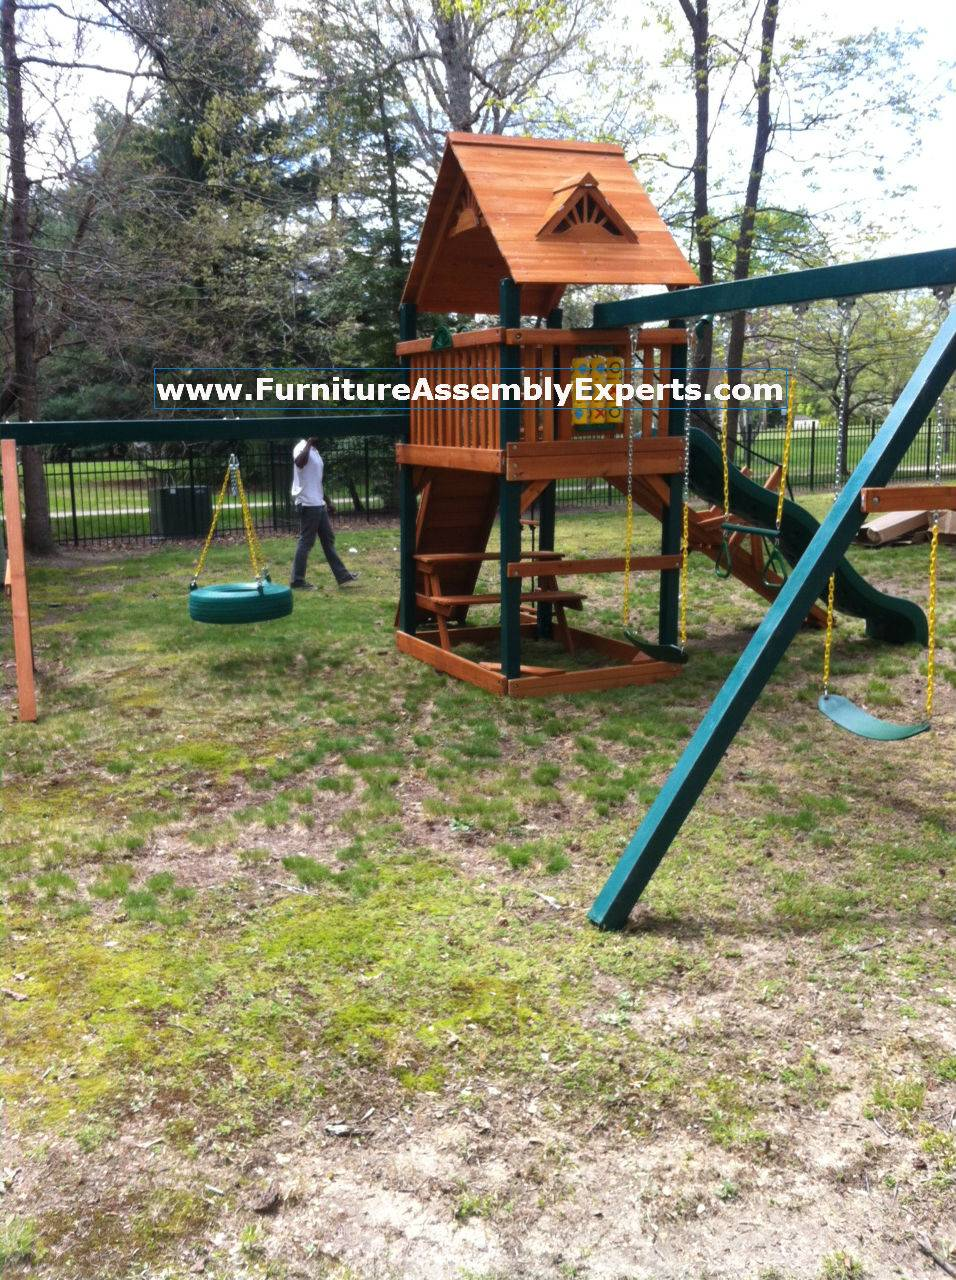 gorilla swing set assembly service in waldorf MD